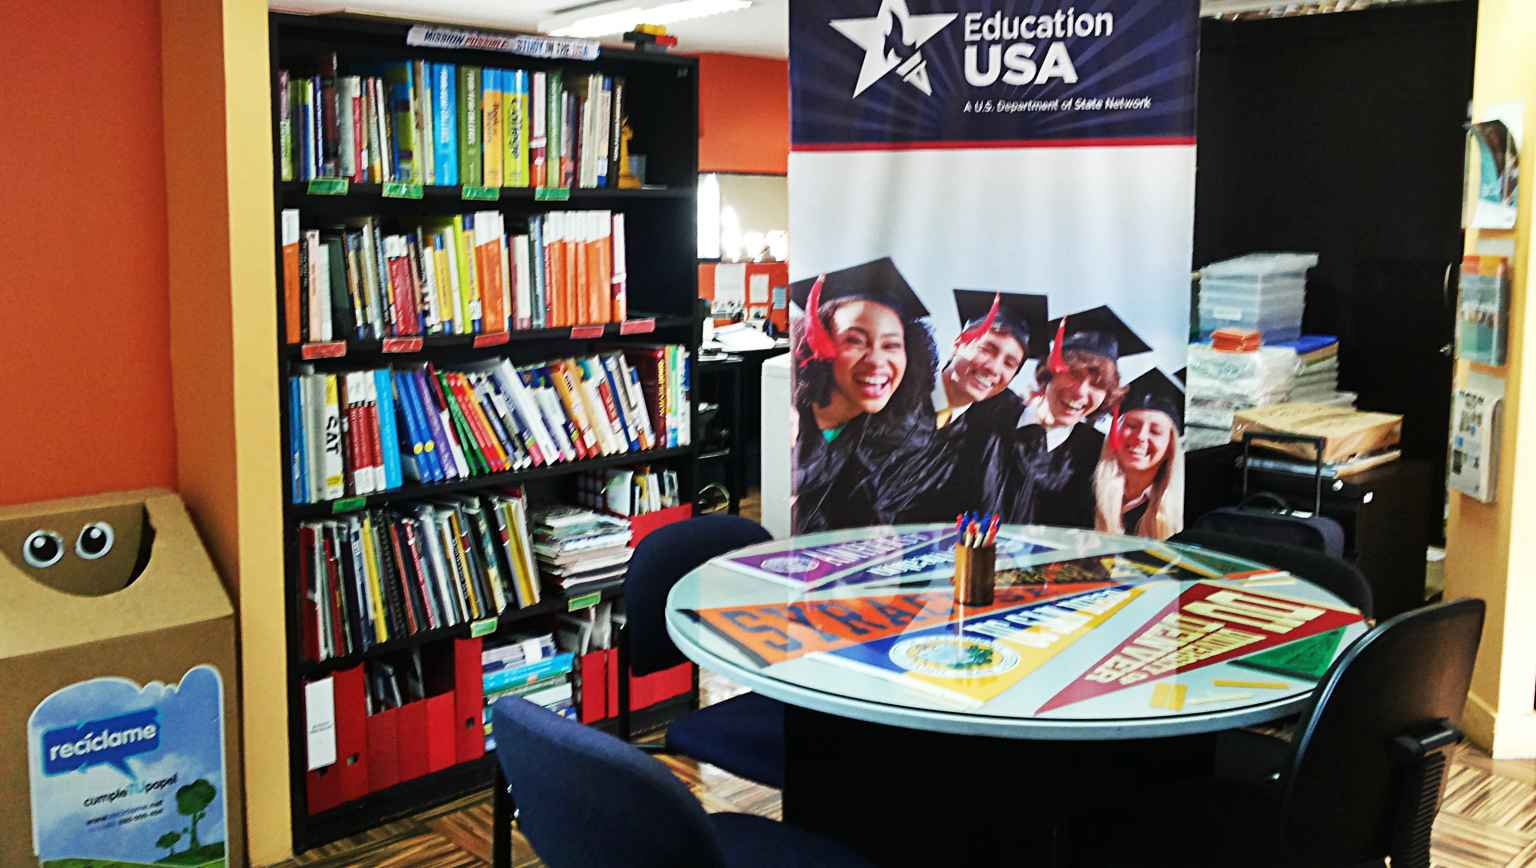 EducationUSA Library